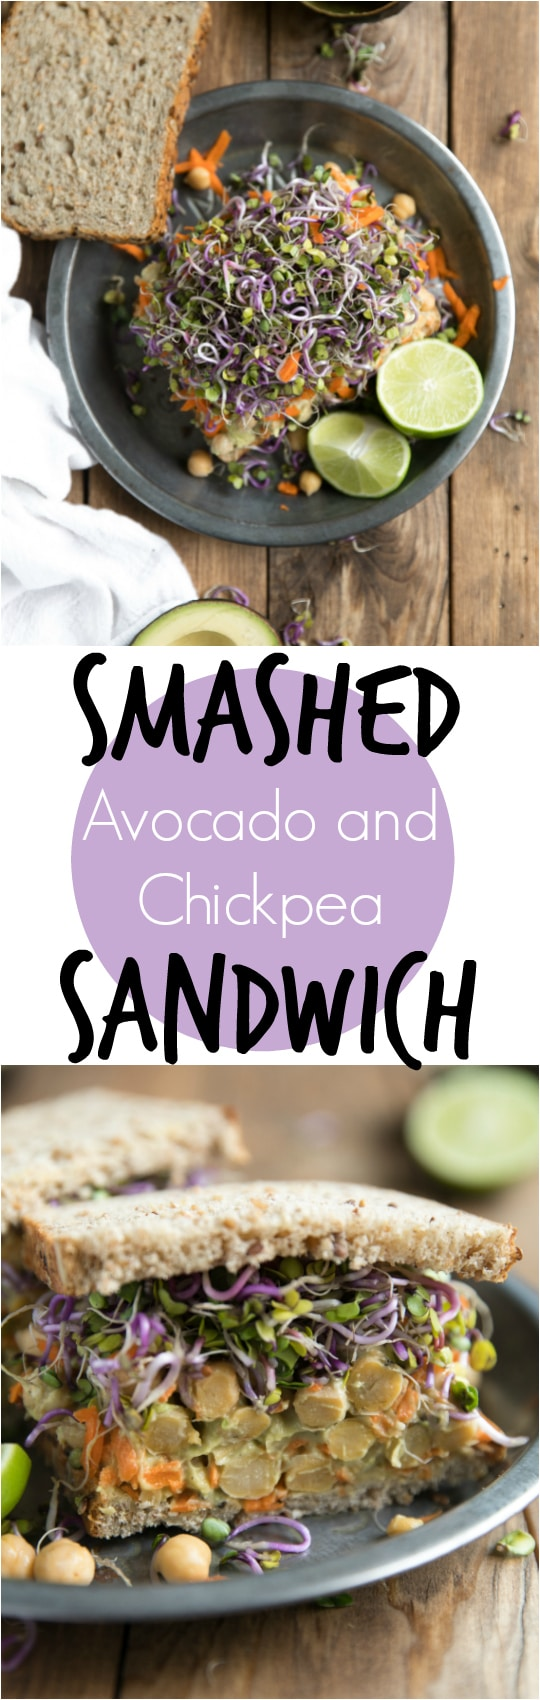 Smashed Avocado and Chickpea Sandwich.  Delicious and so super healthy, this Smashed Avocado and Chickpea Sandwich is lunch done right.  #theforkedspoon #healthyreciepe #lunch #easylunch #sandwhich